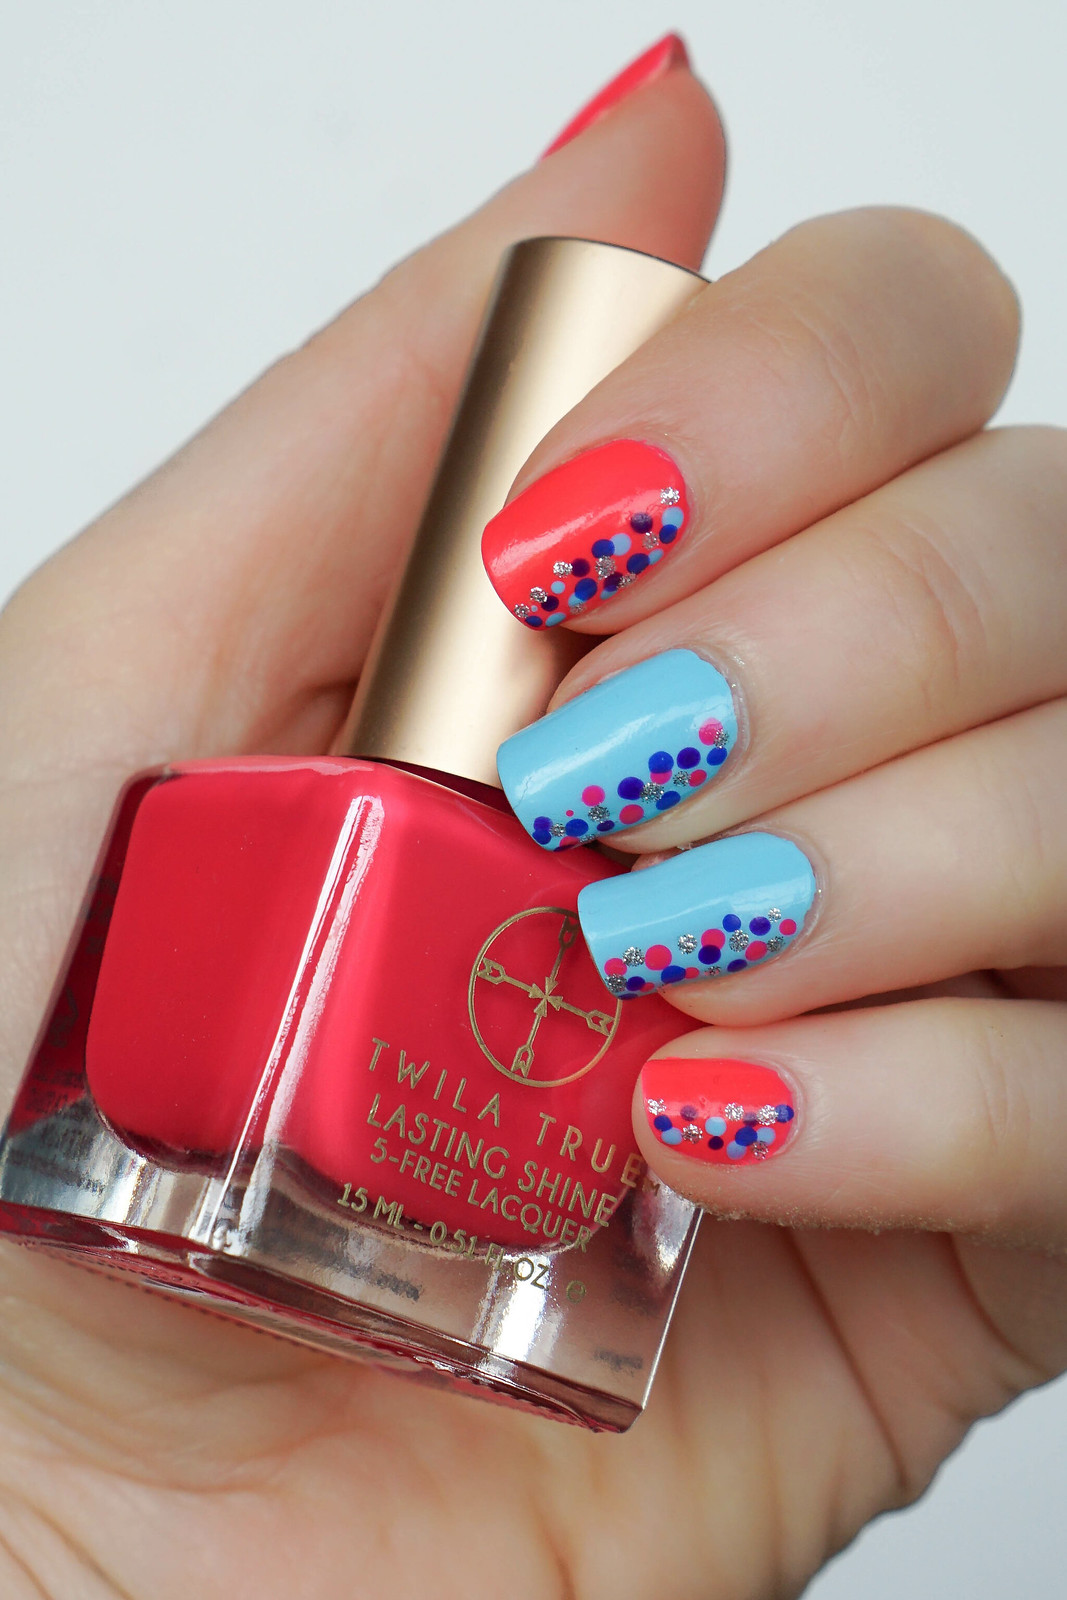 Colorful Confetti Nail Art Twila True Beauty Nail Lacquer